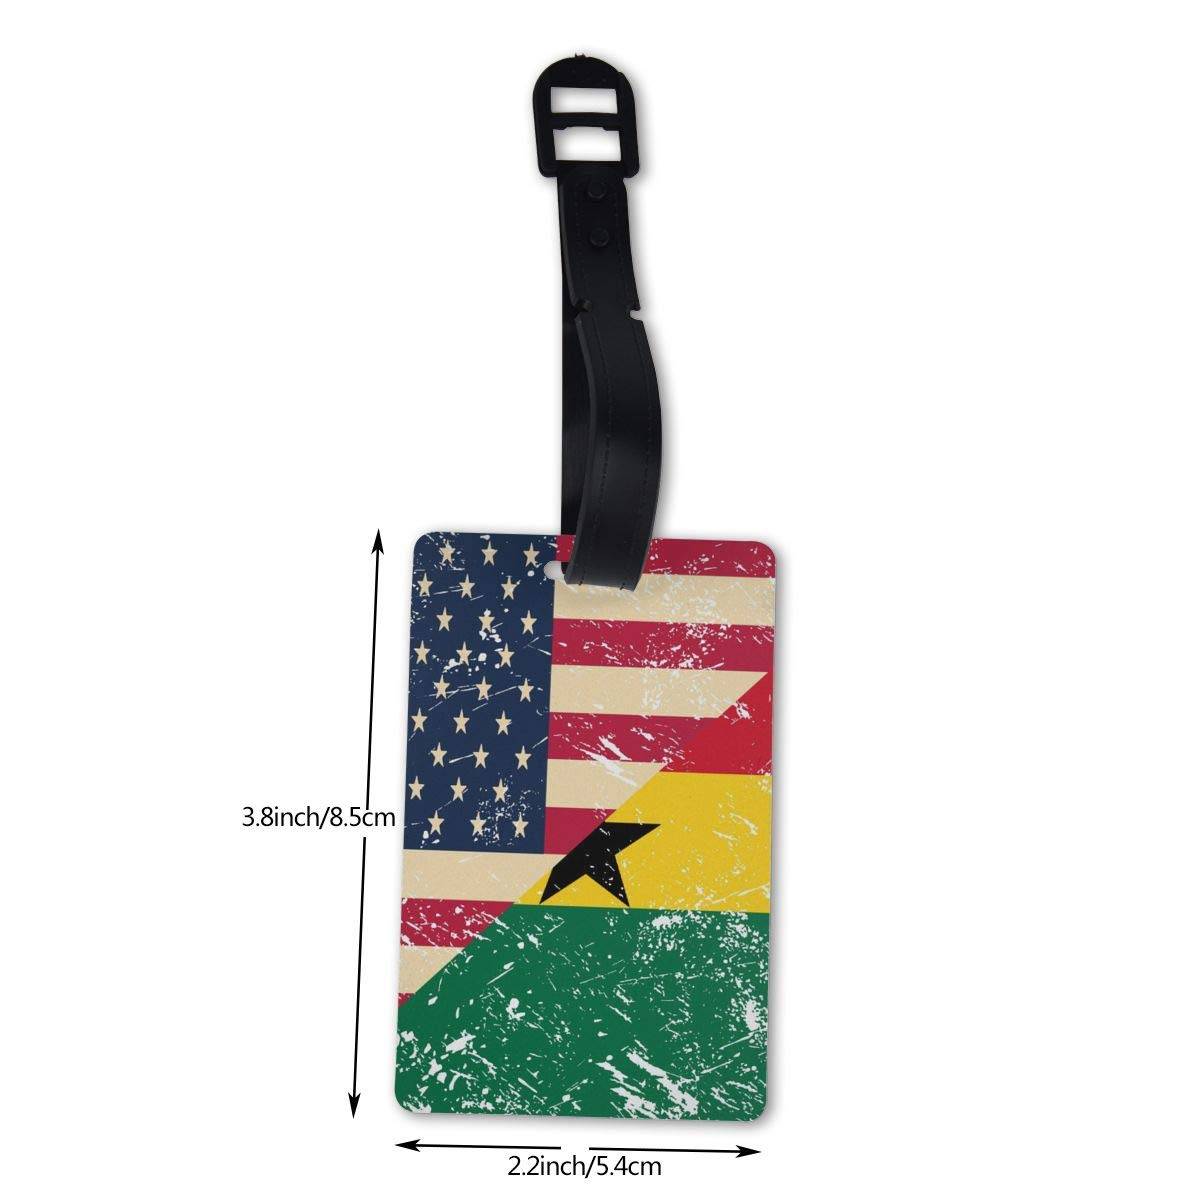 NB UUD American and Ghana Retro Flag Travel Luggage Tag Printed Employees Card Luggage Tag Holders Travel ID Identification Labels for Baggage Suitcases Bags